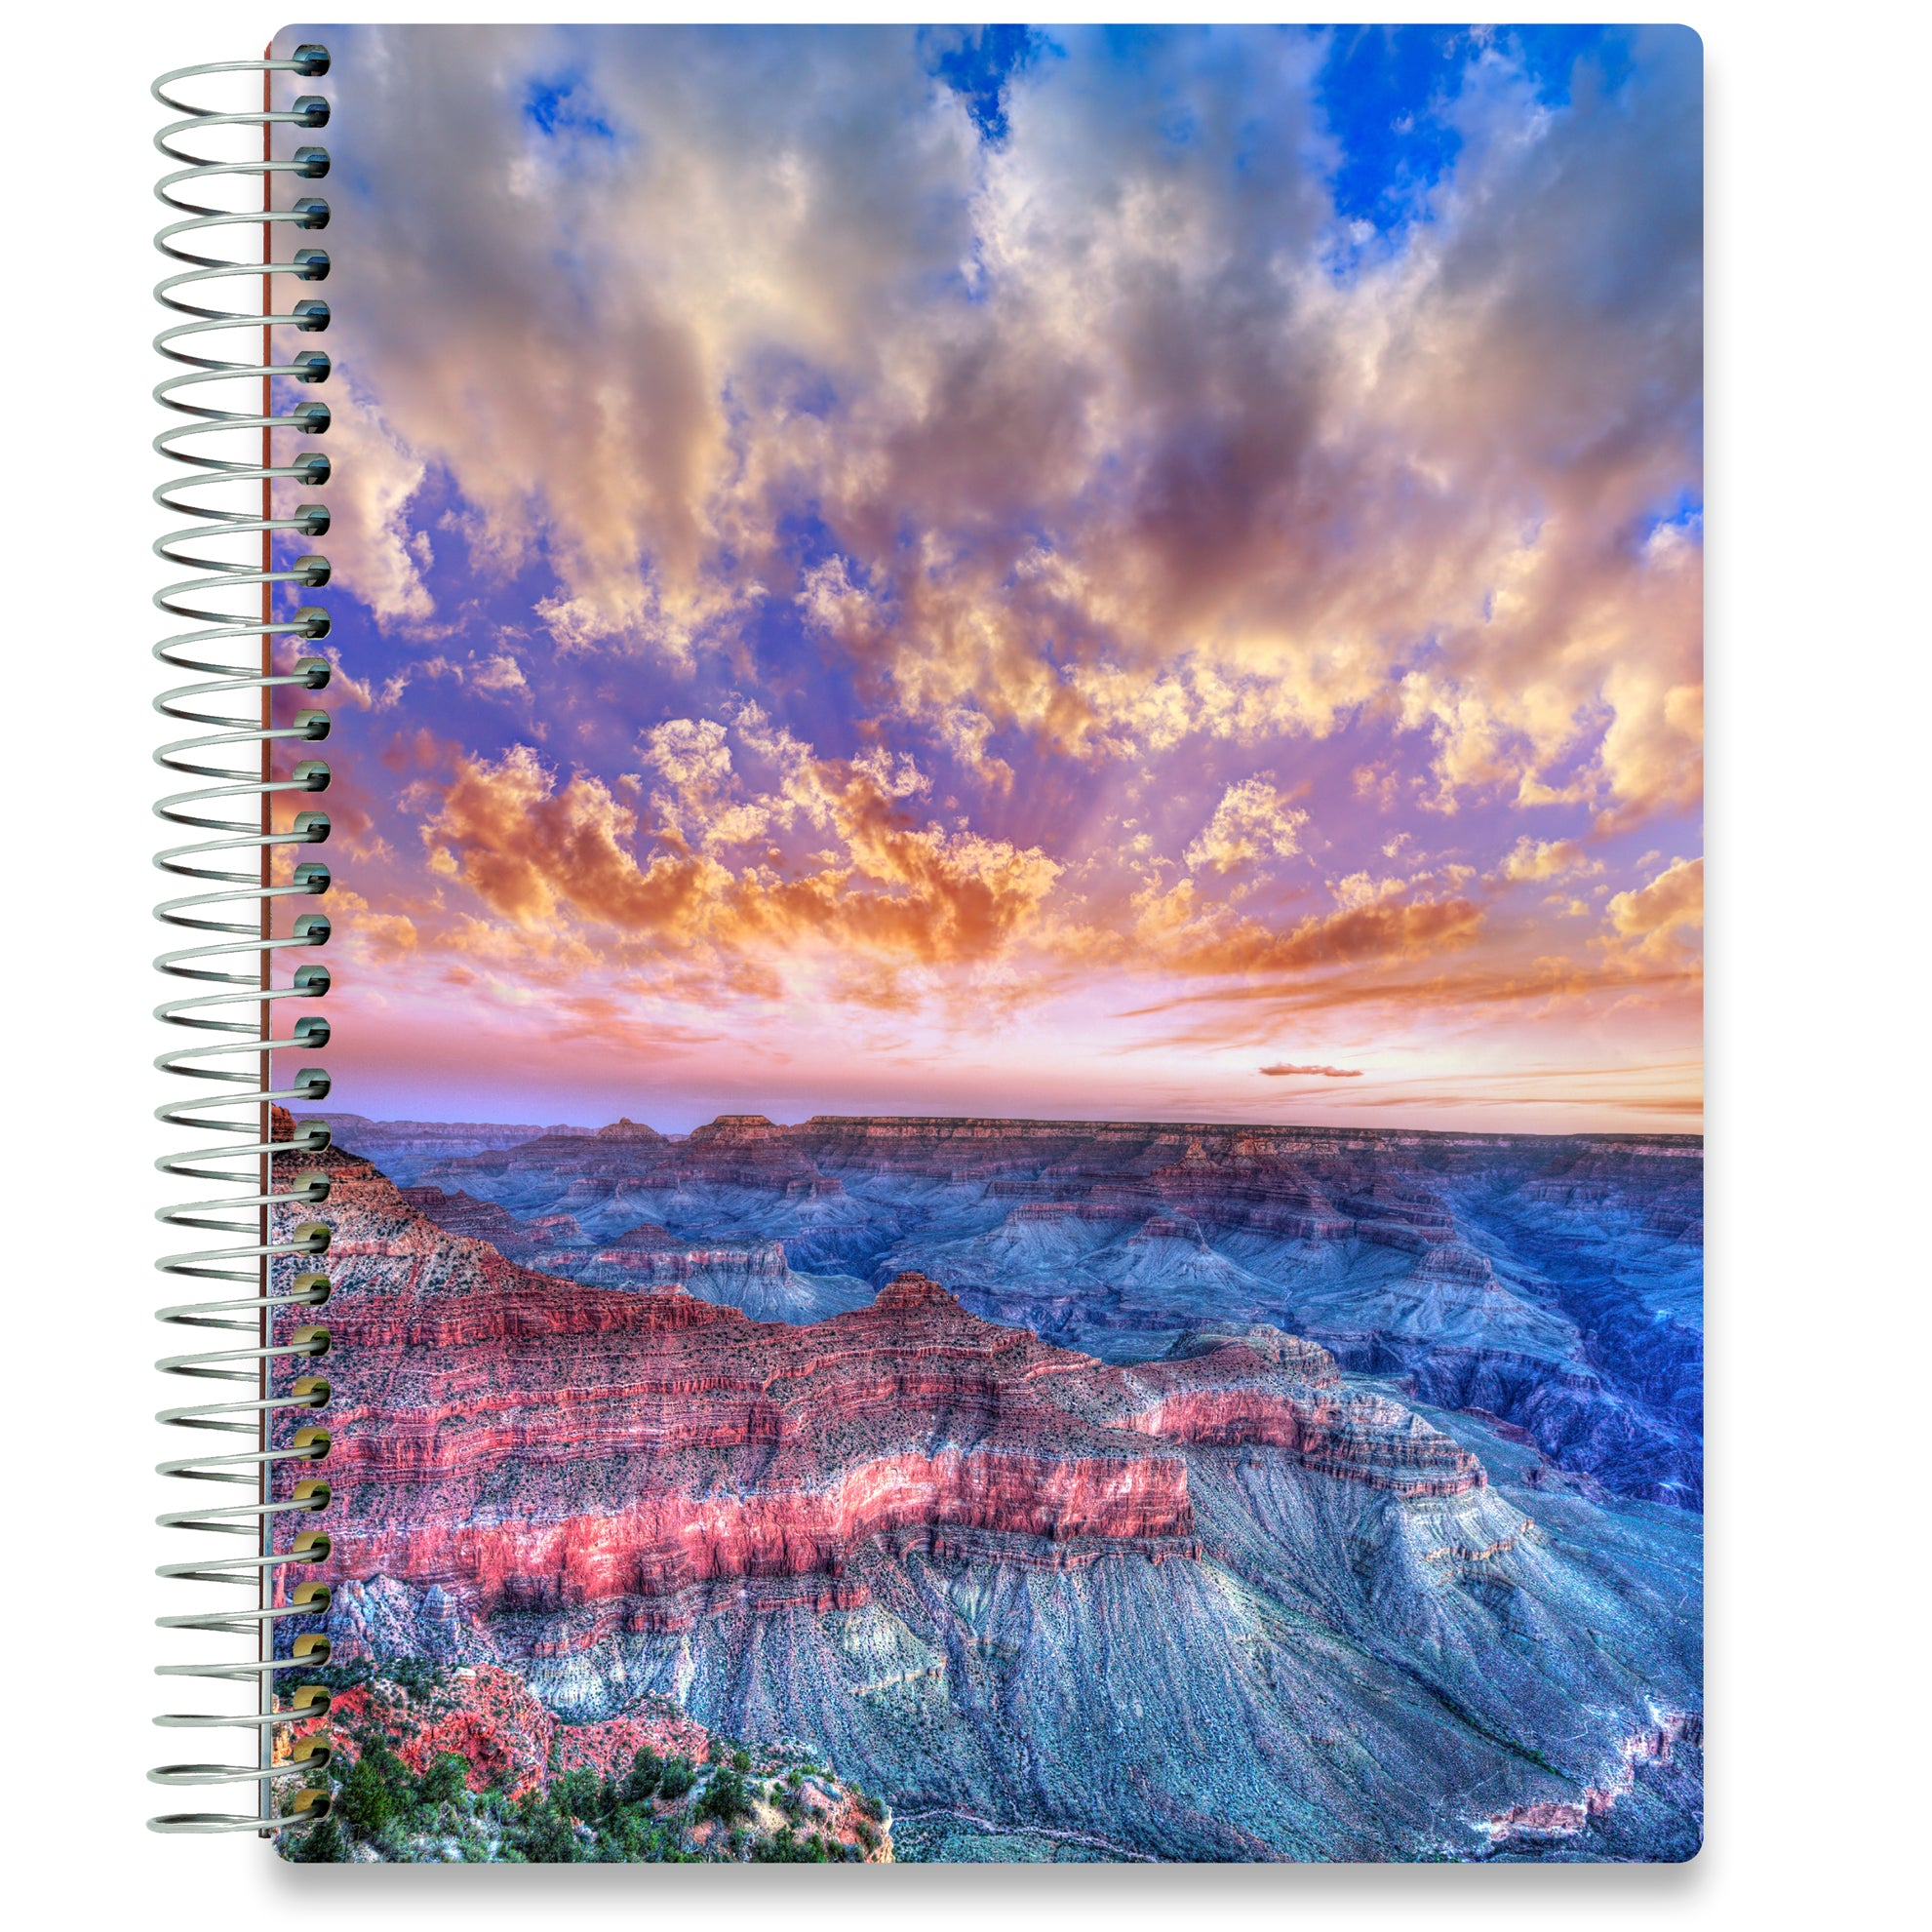 NEW: April 2020-2021 Planner - 8.5x11 - Grand Canyon-Office Product-Tools4Wisdom